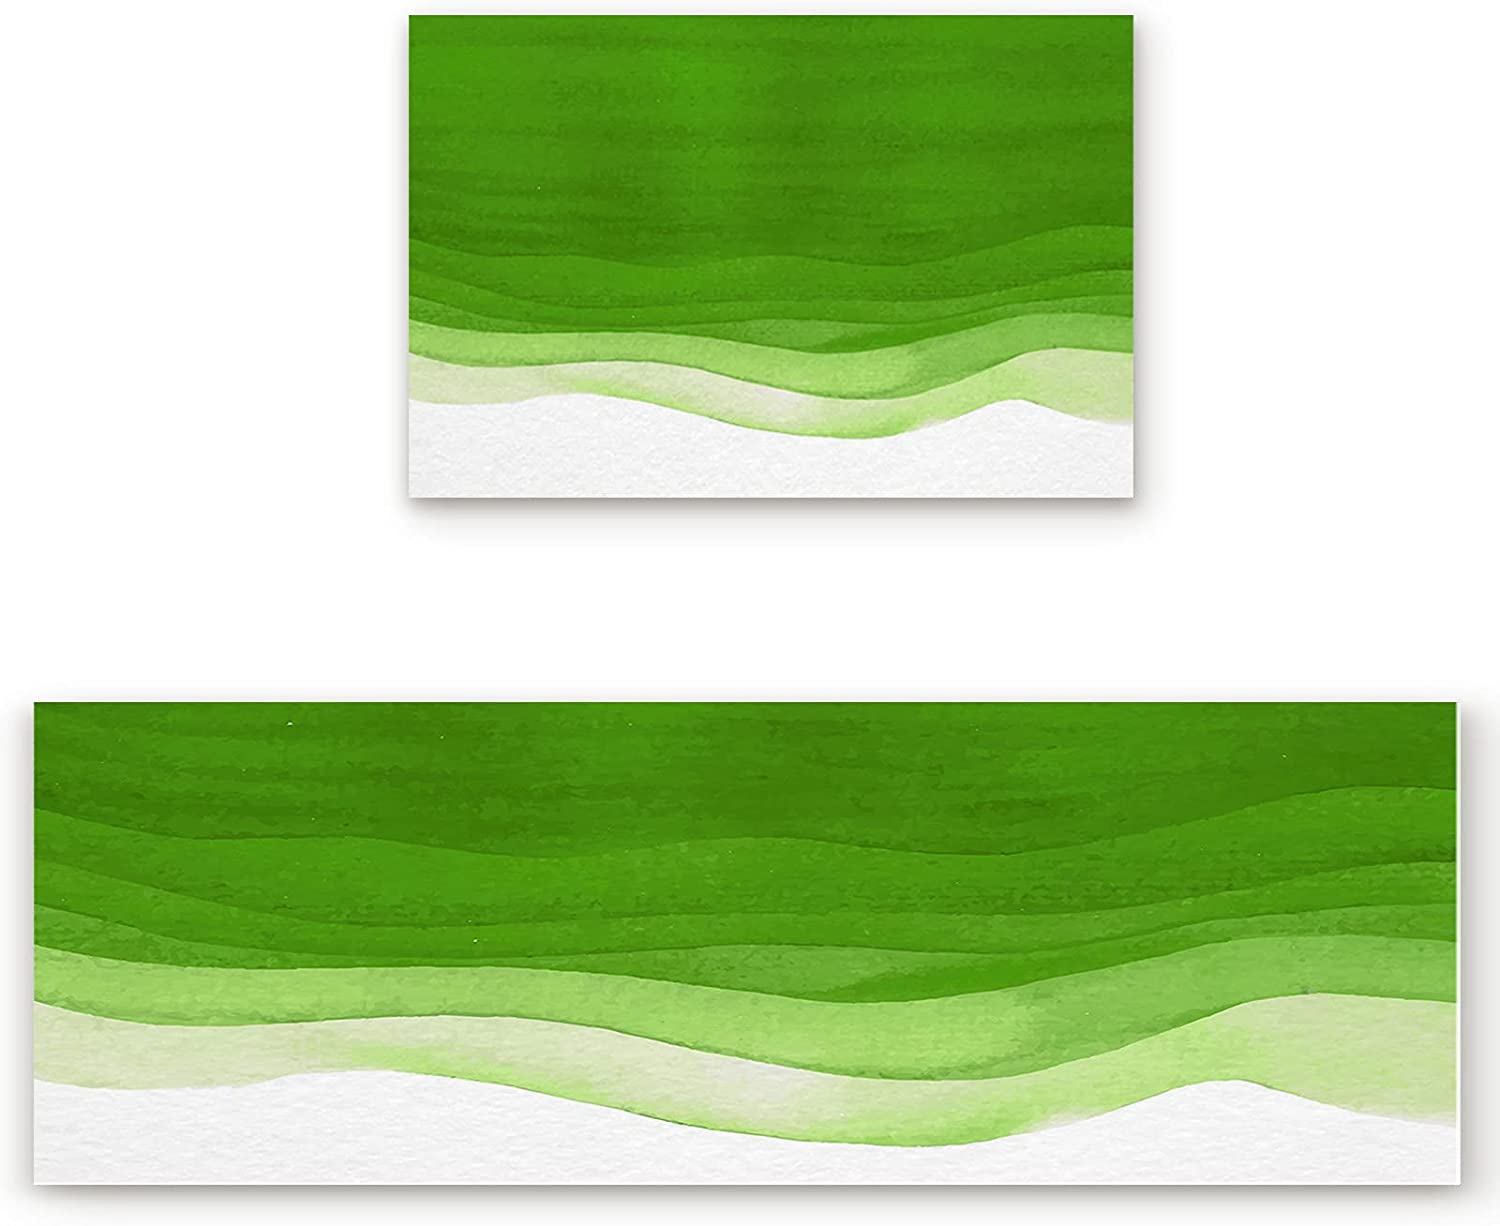 Kitchen Bath Rug Runner Set Mail order cheap 2 White Max 86% OFF Water Piece Ombre and Green